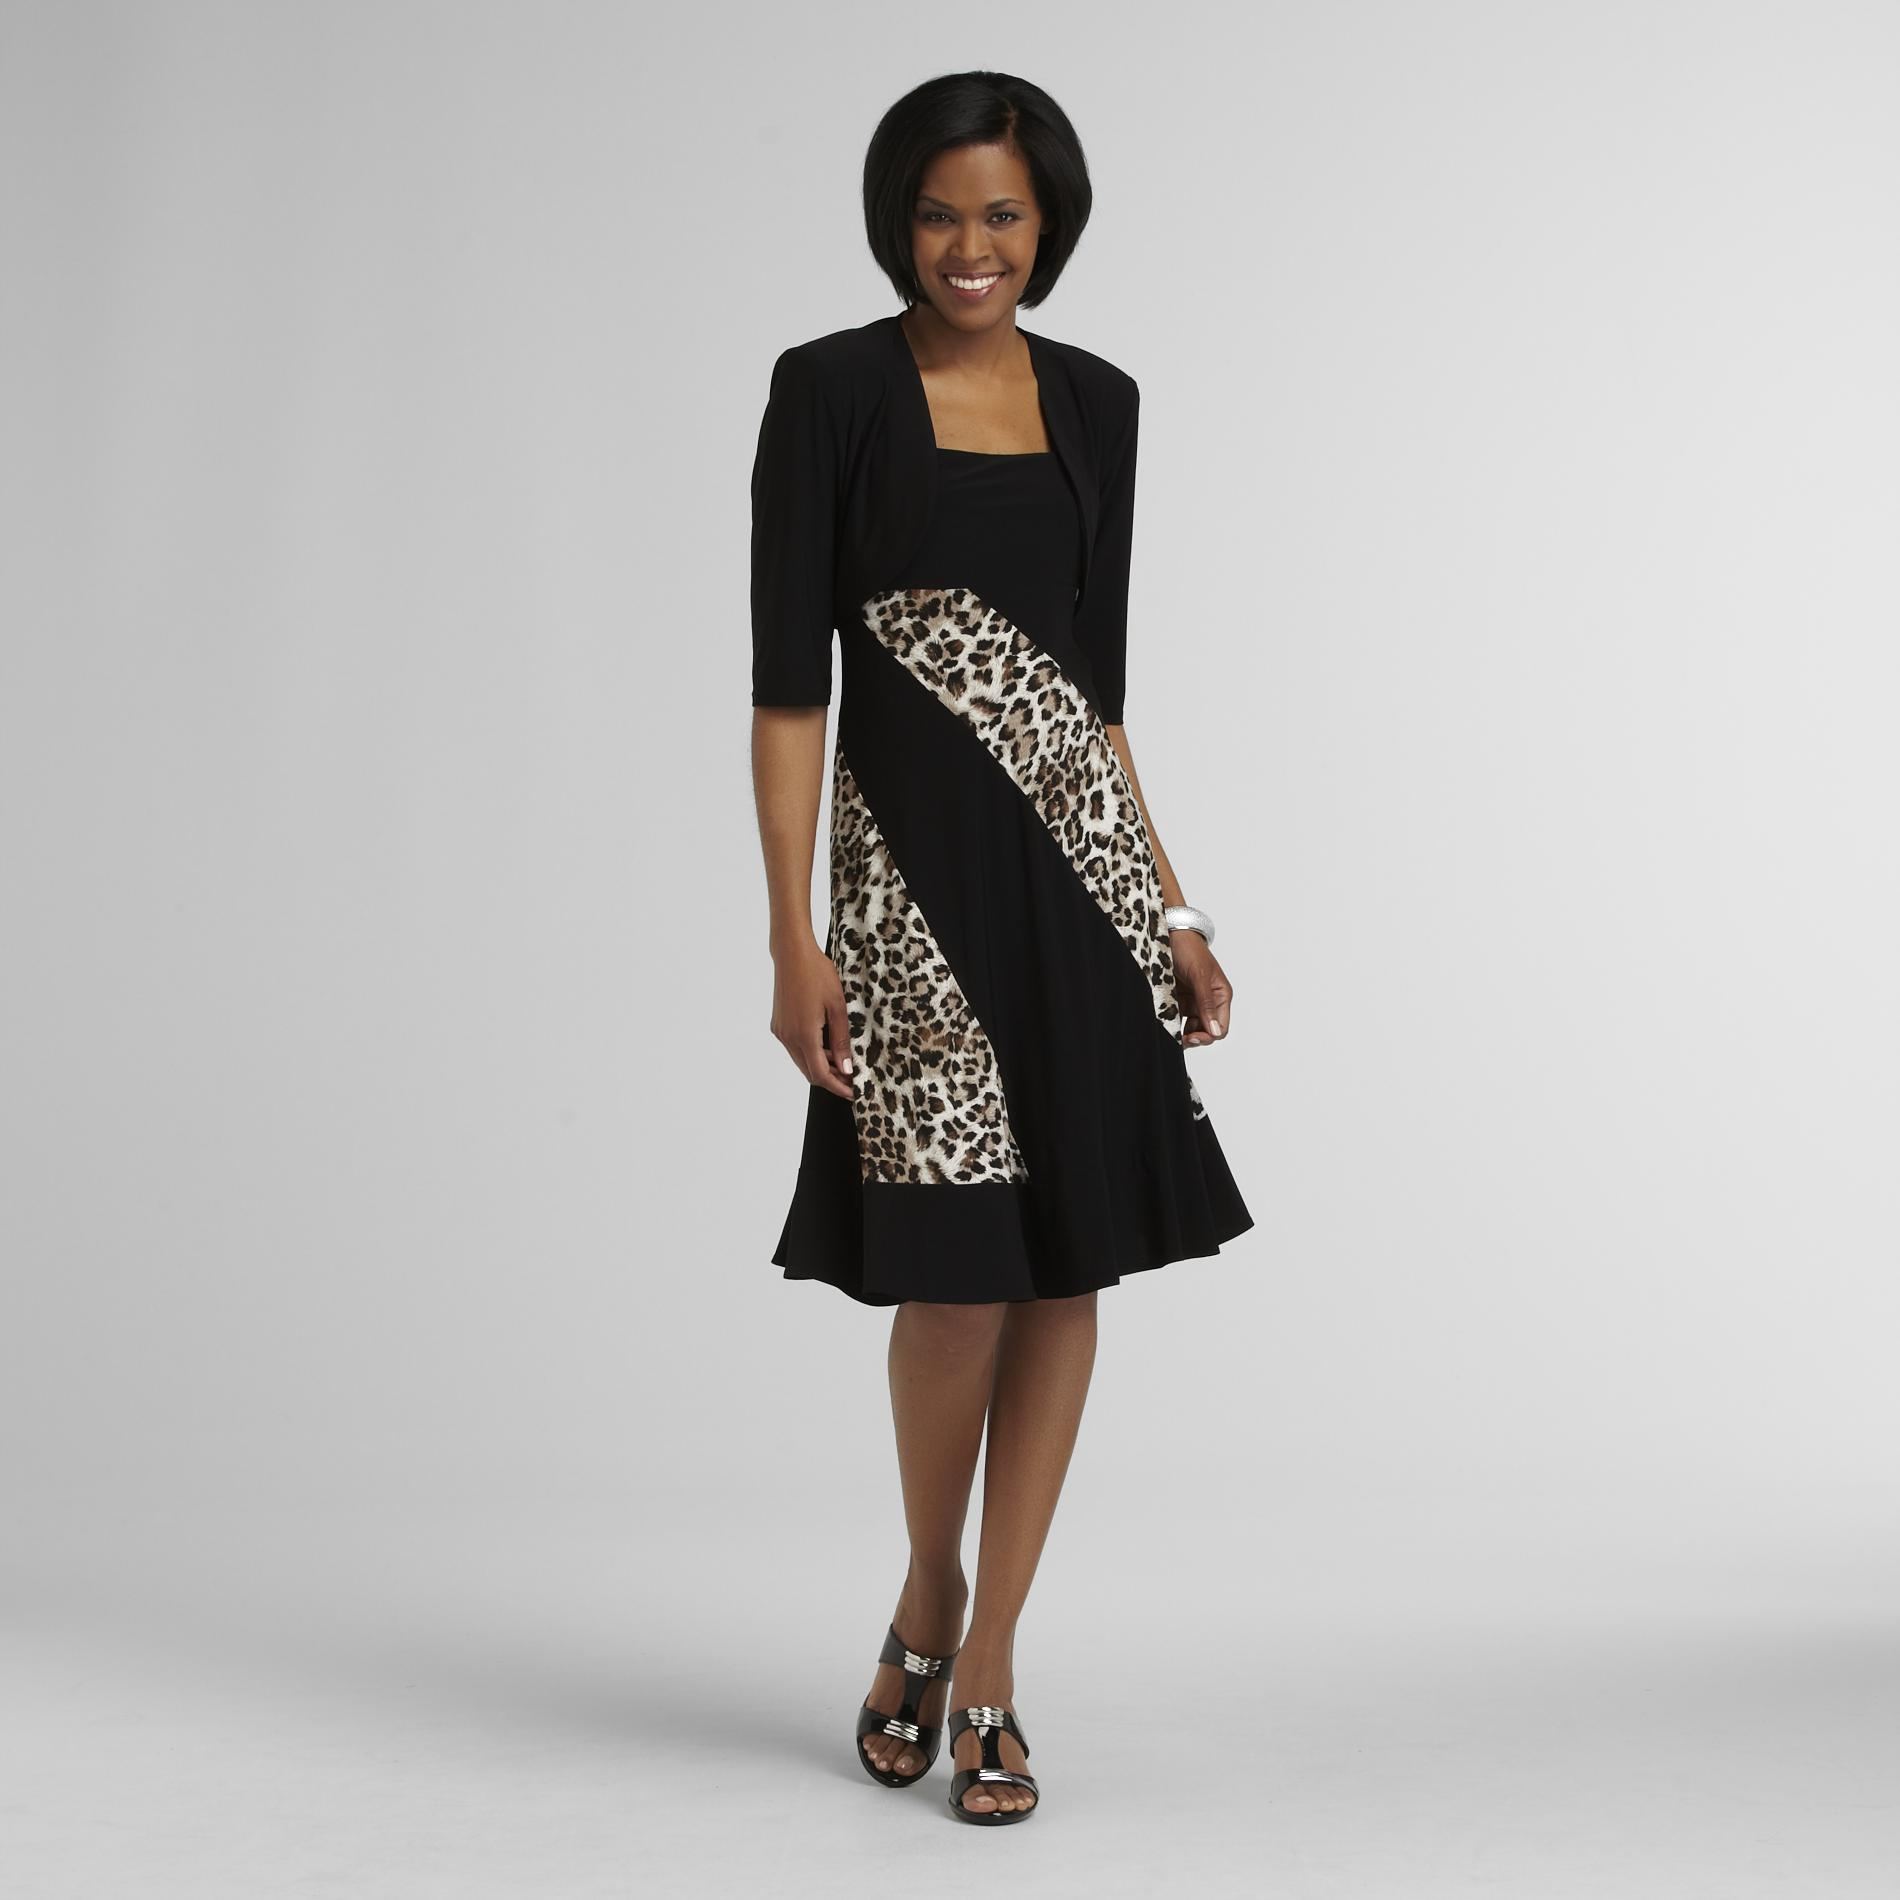 R & M Richards Women's Knit Dress & Jacket - Leopard Print at Sears.com